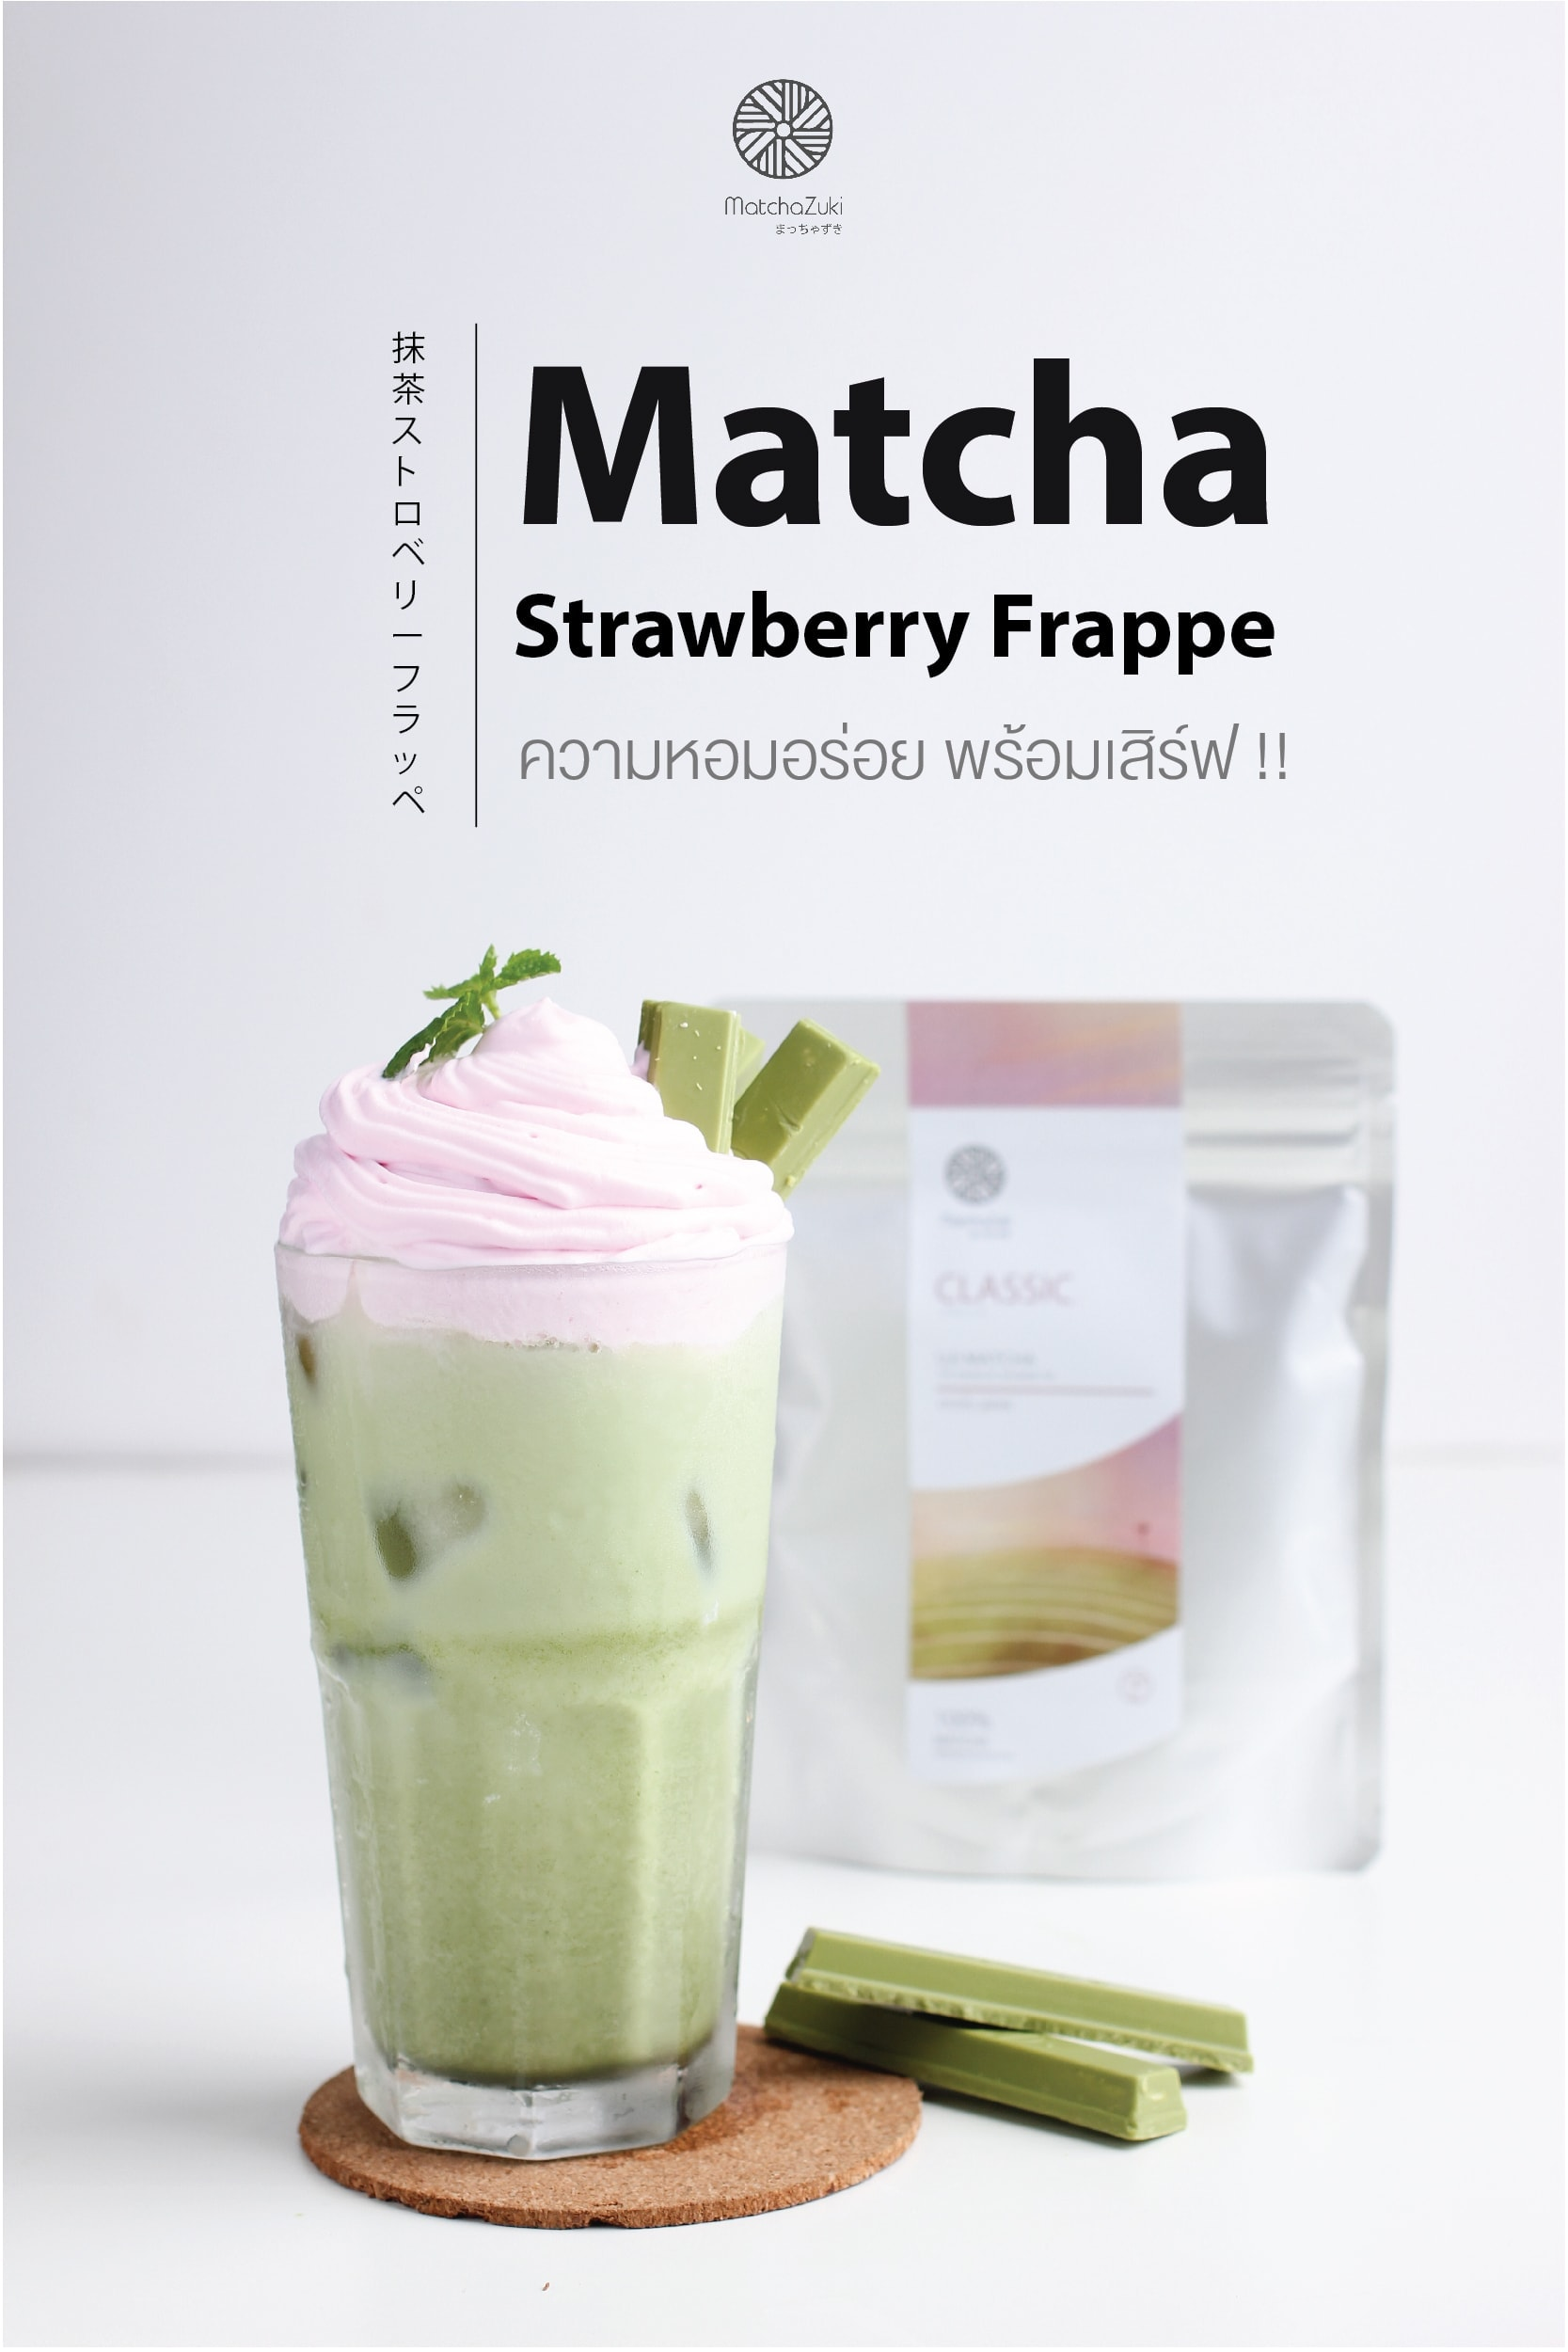 Matcha Strawberry Frappe